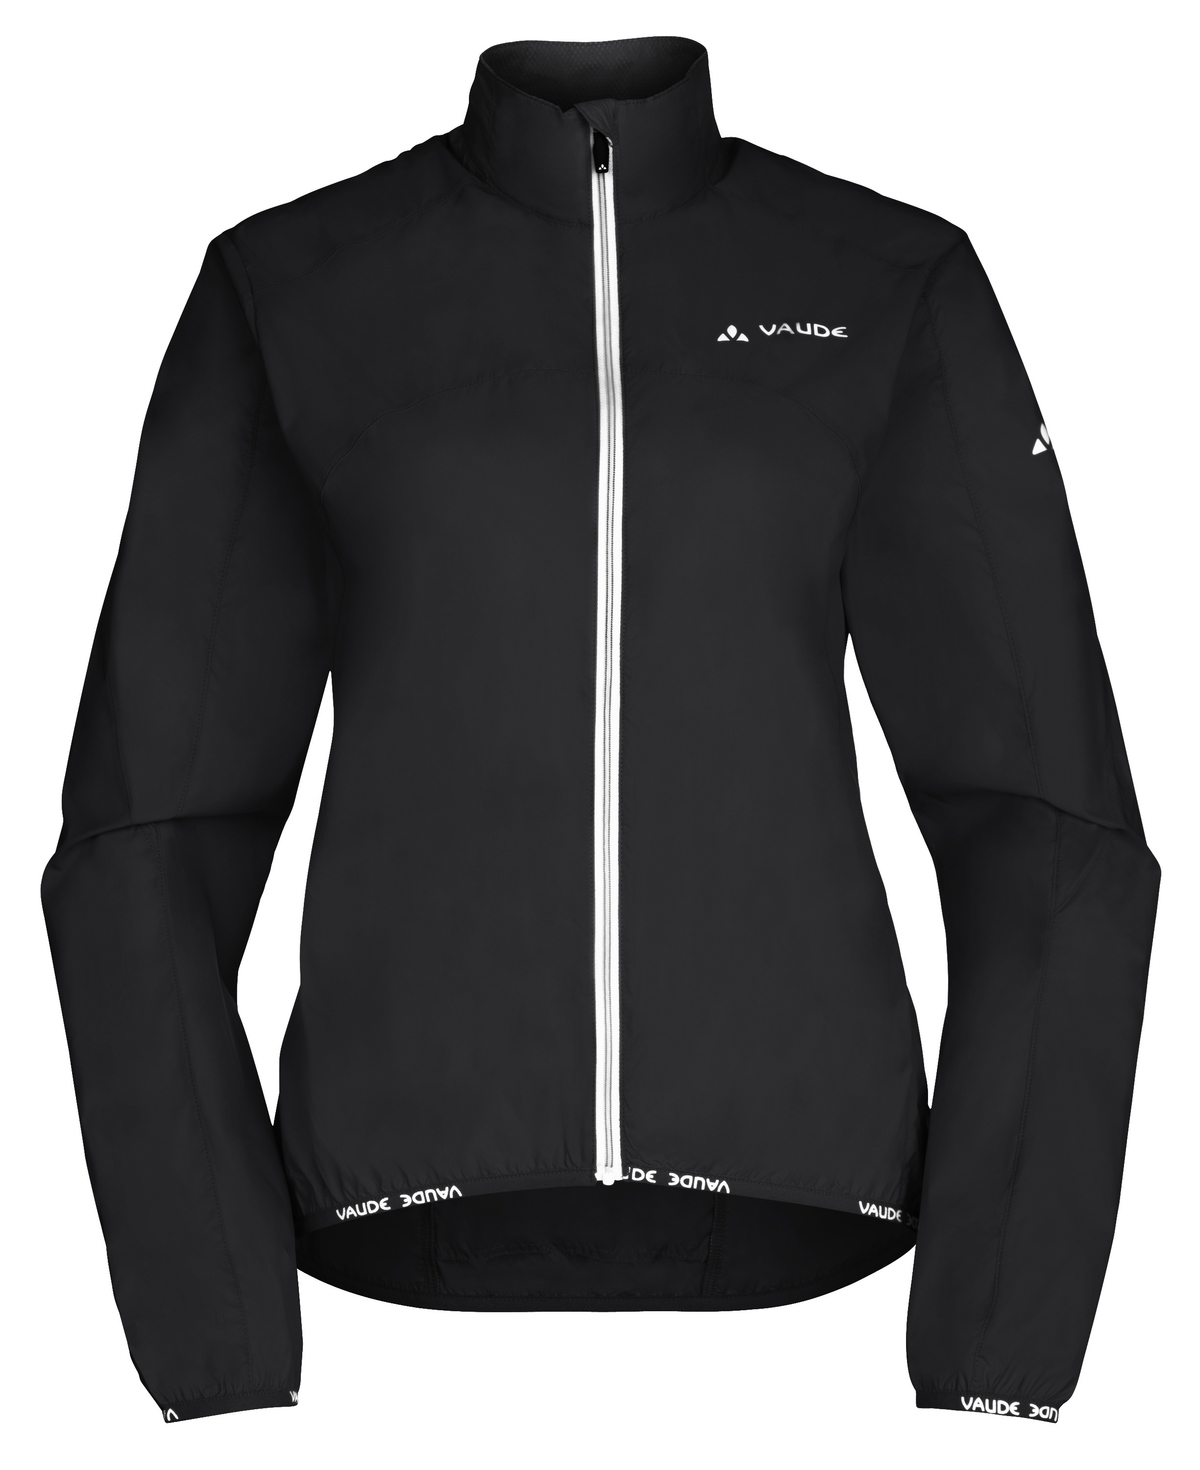 VAUDE Women´s Air Jacket II black Größe 34 - schneider-sports